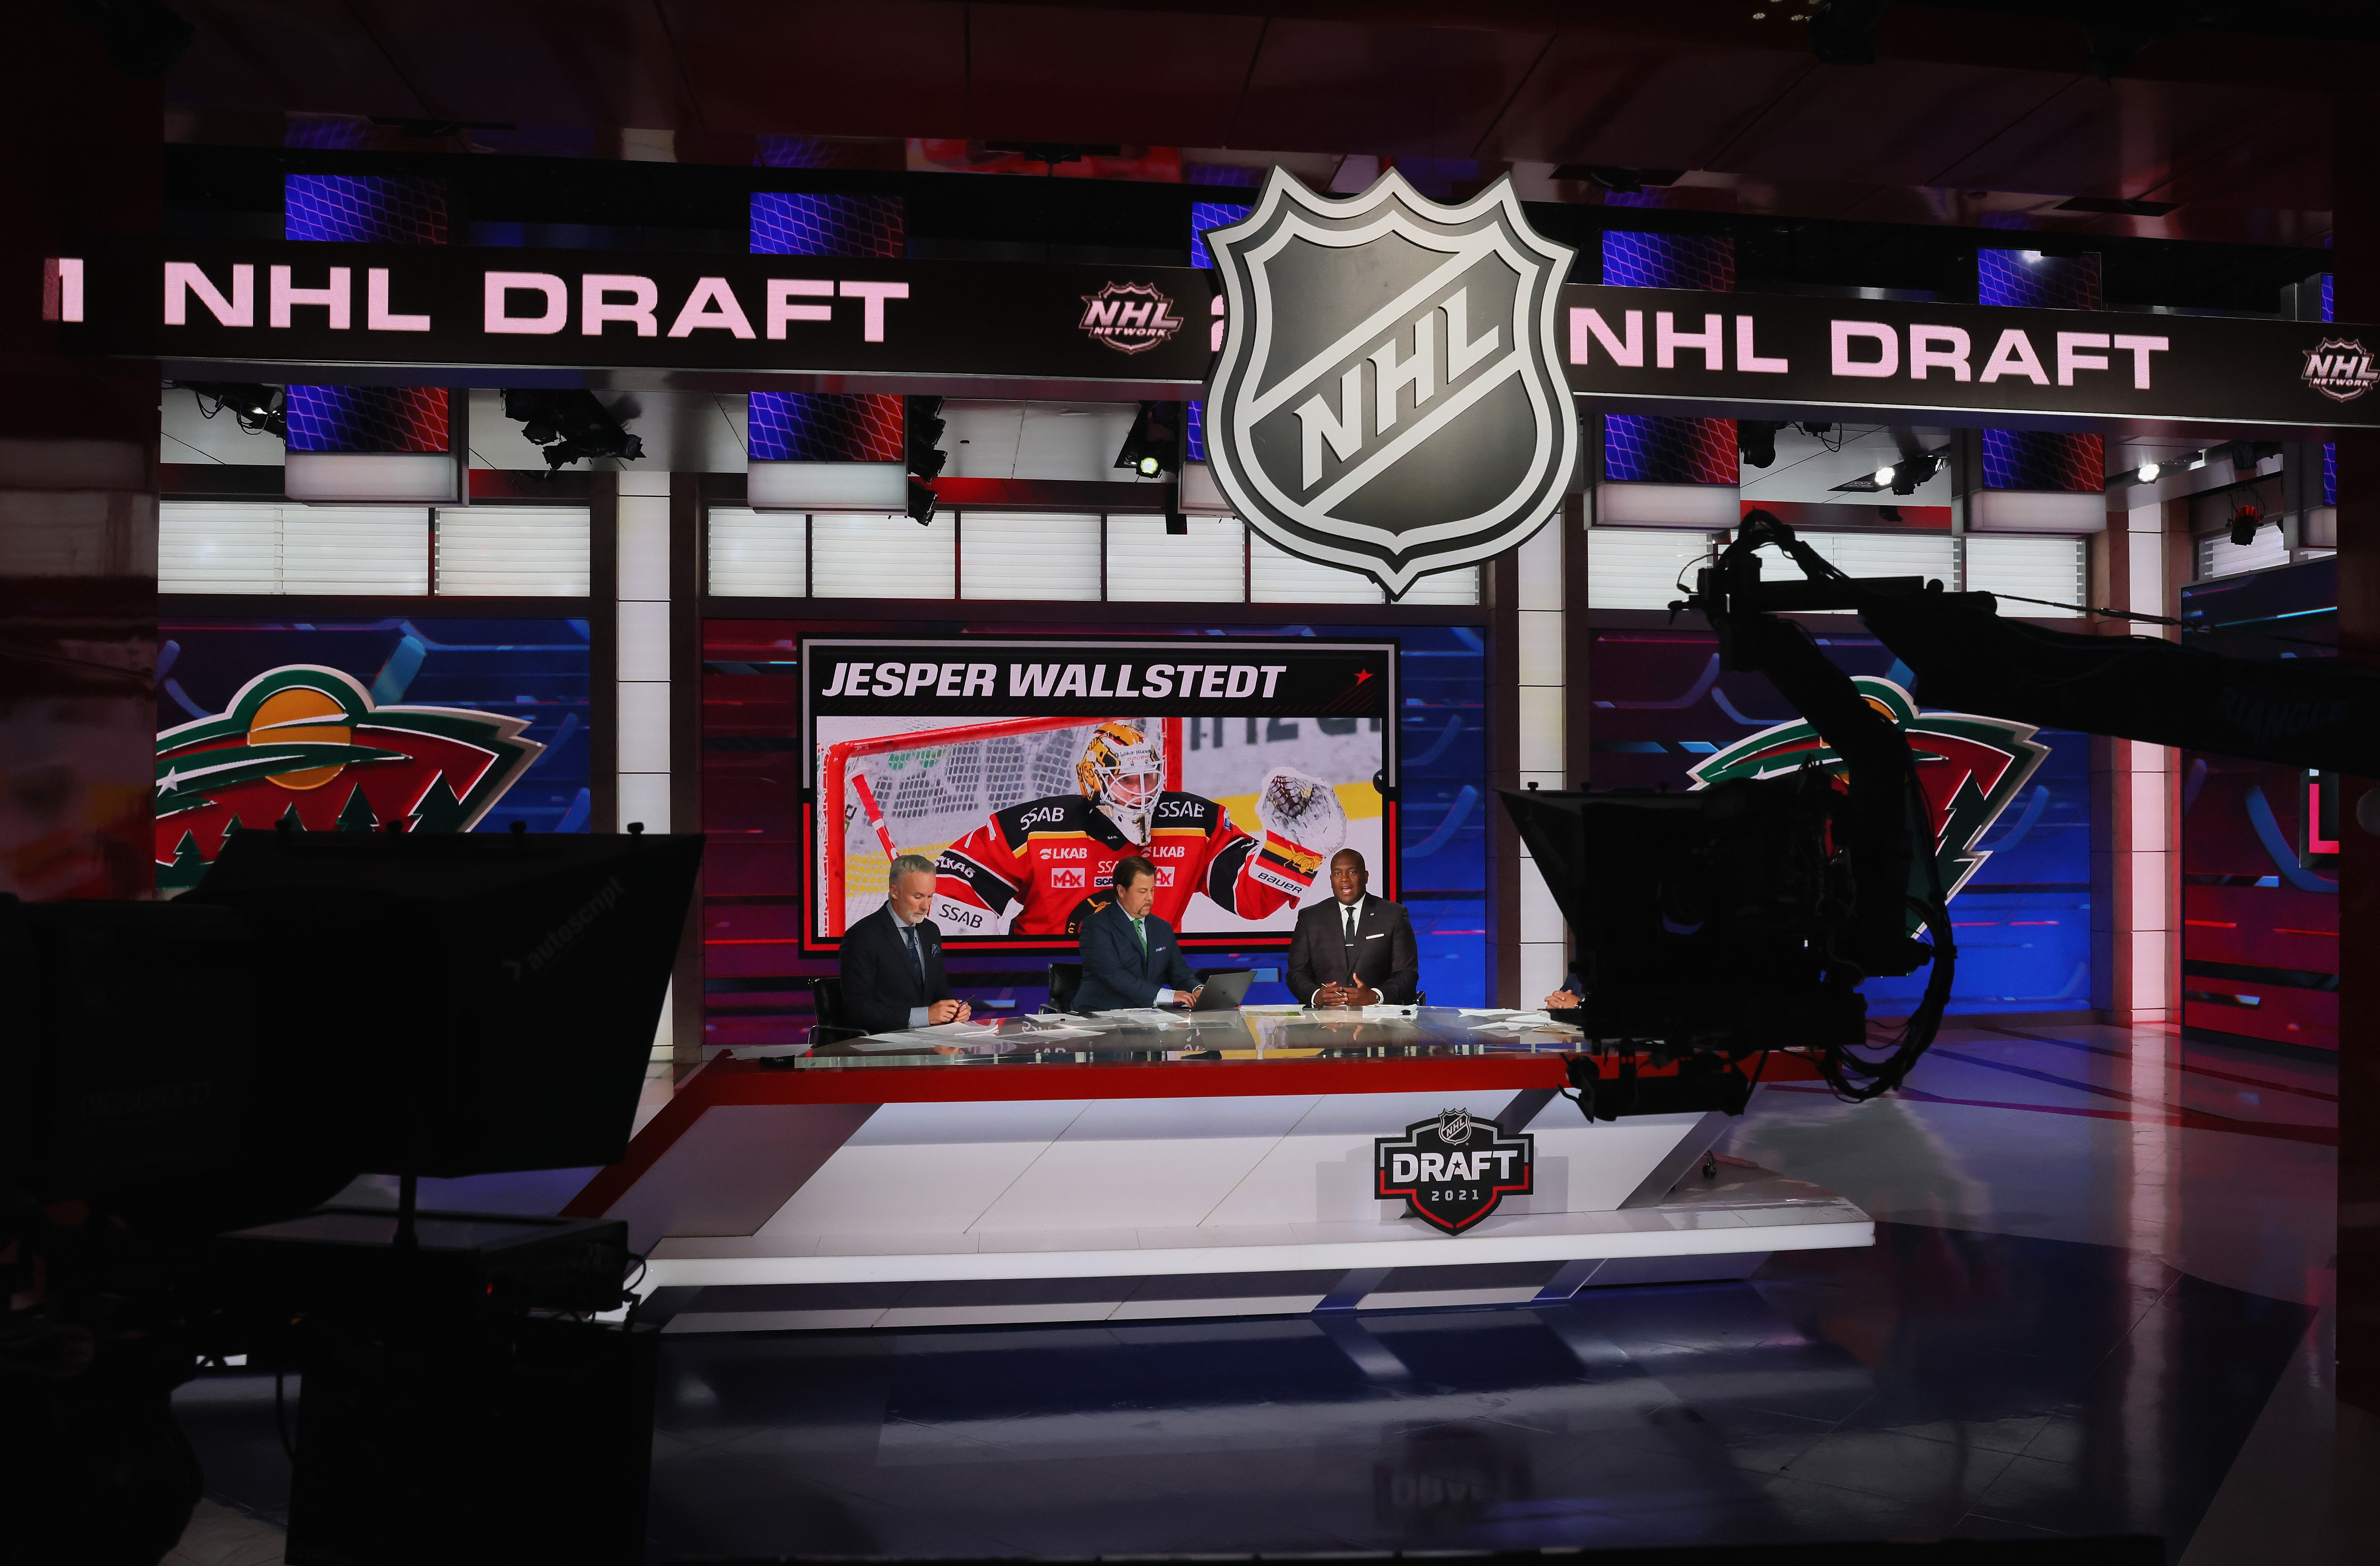 With the 20th pick in the 2021 NHL Entry Draft, the Minnesota Wild select Jesper Wallstedt during the first round of the 2021 NHL Entry Draft at the NHL Network studios on July 23, 2021 in Secaucus, New Jersey.